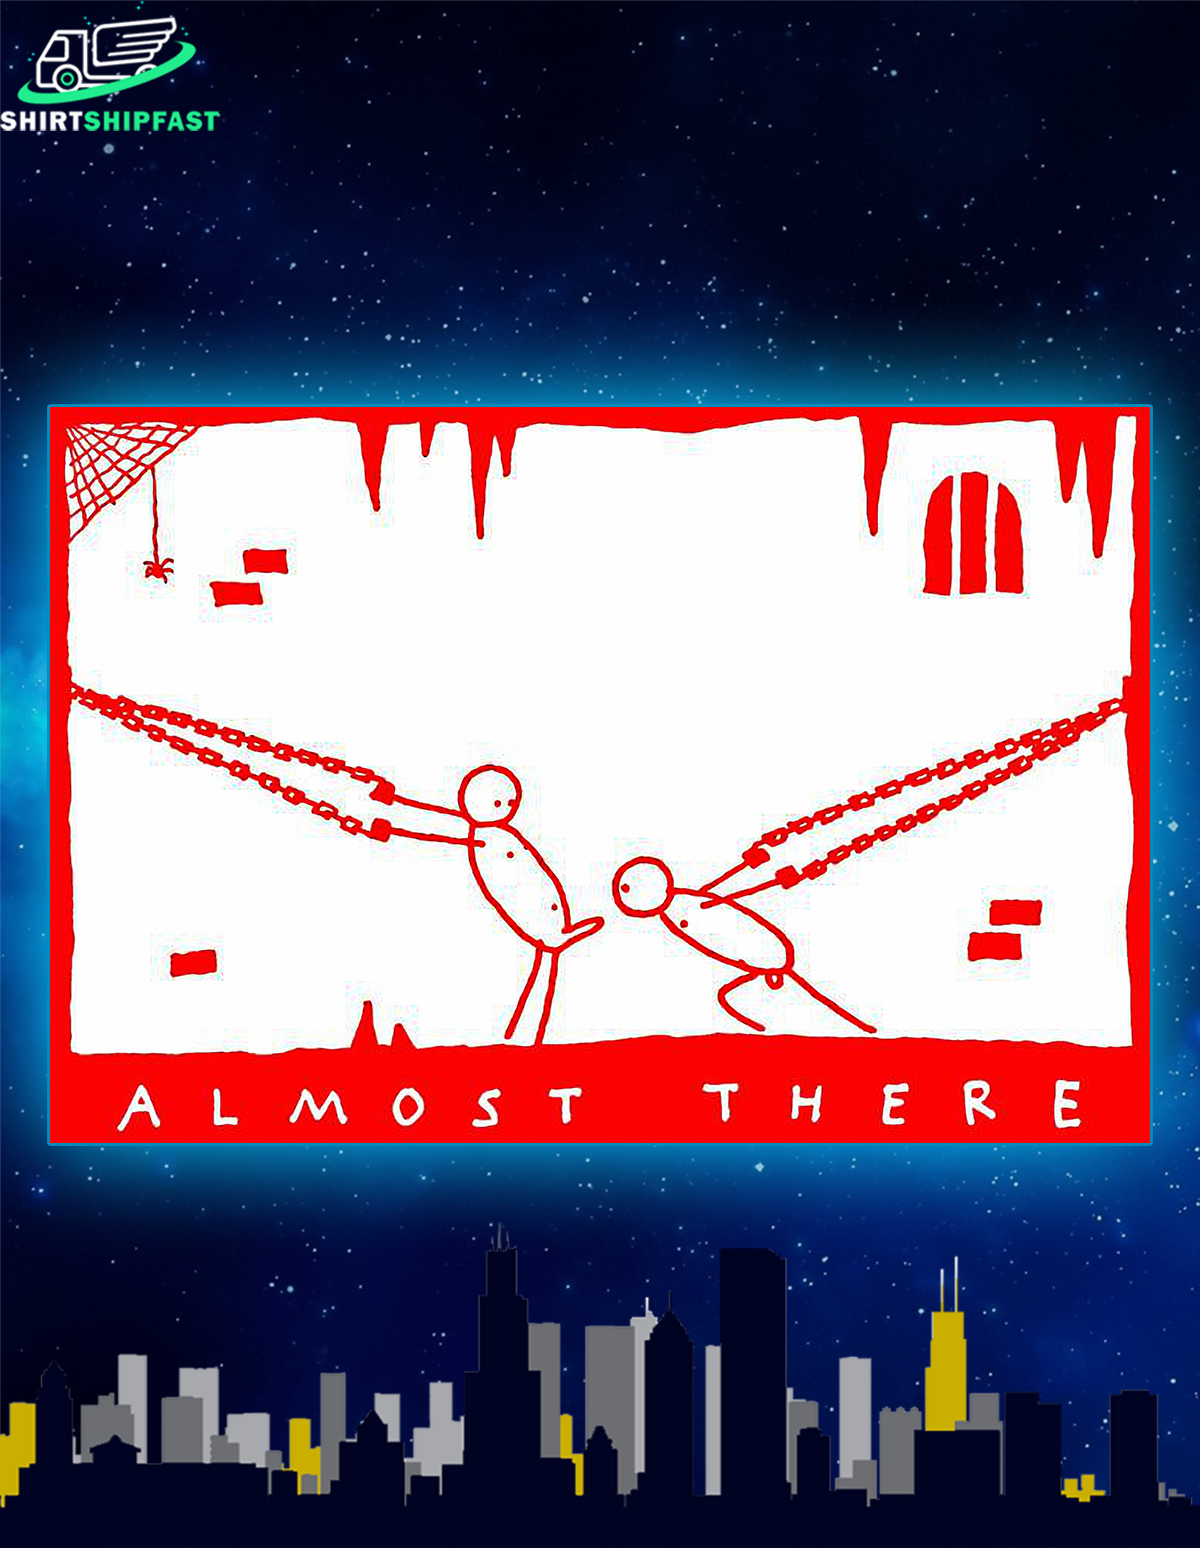 Almost there poster